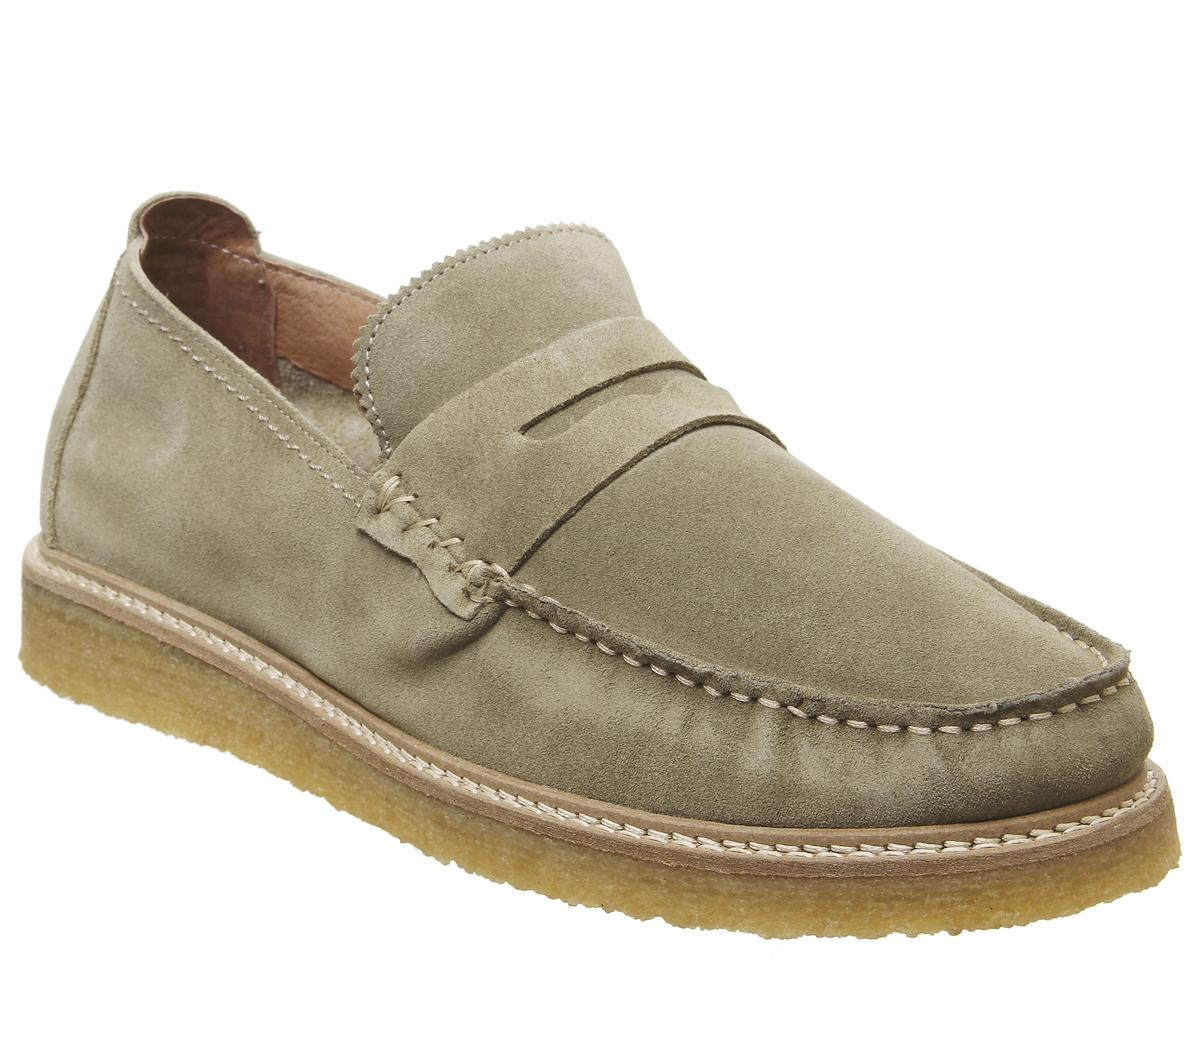 Poste Loafers